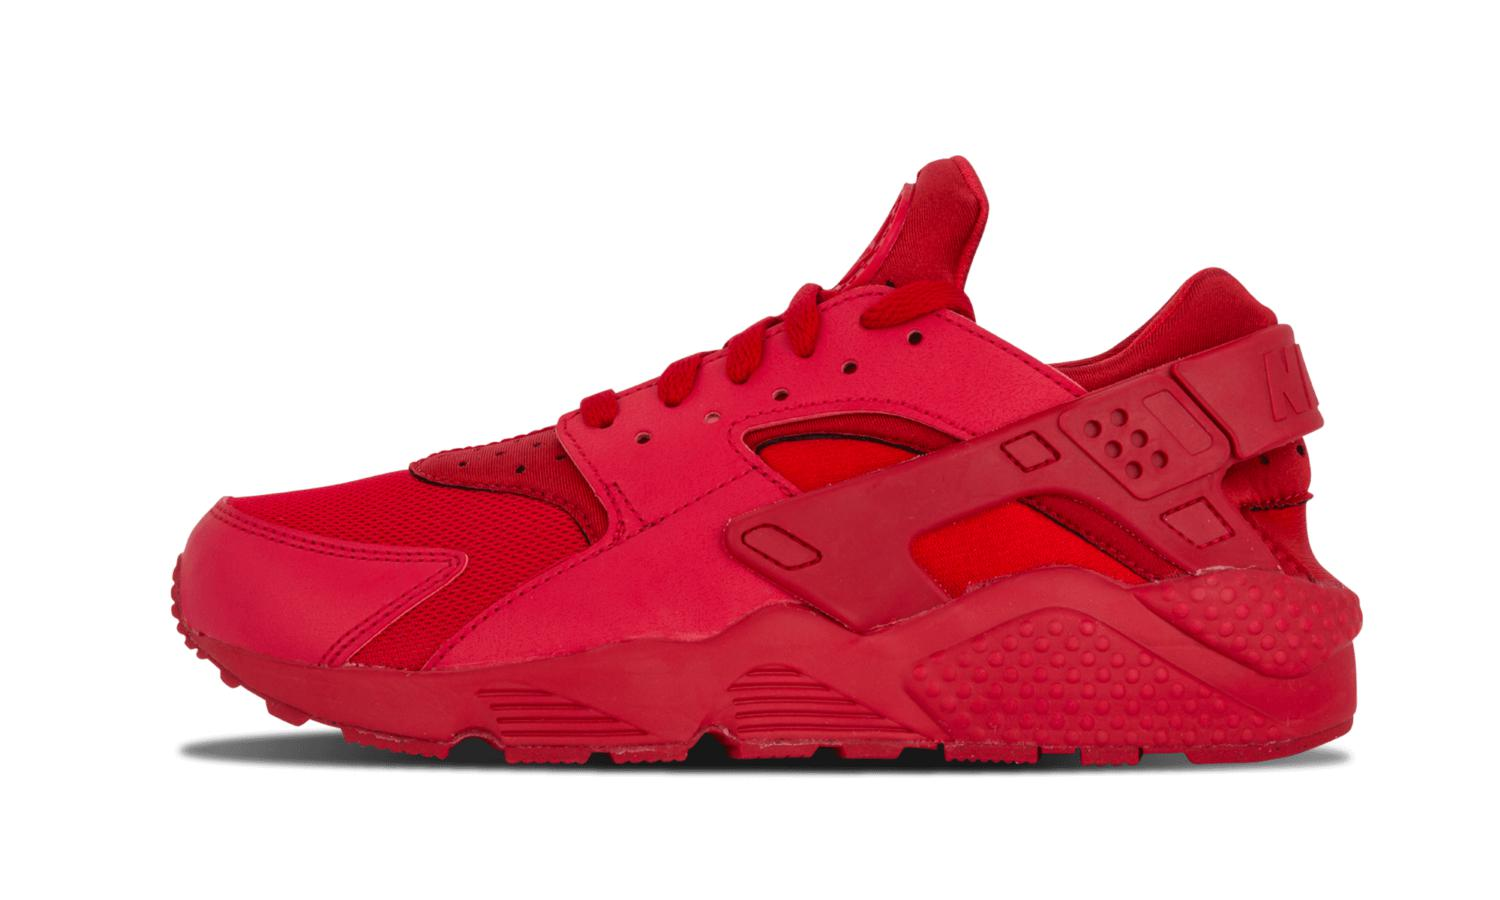 Lyst Nike Air in Huarache varsity Red 318429 660 2015 in Air Red 0cdce8